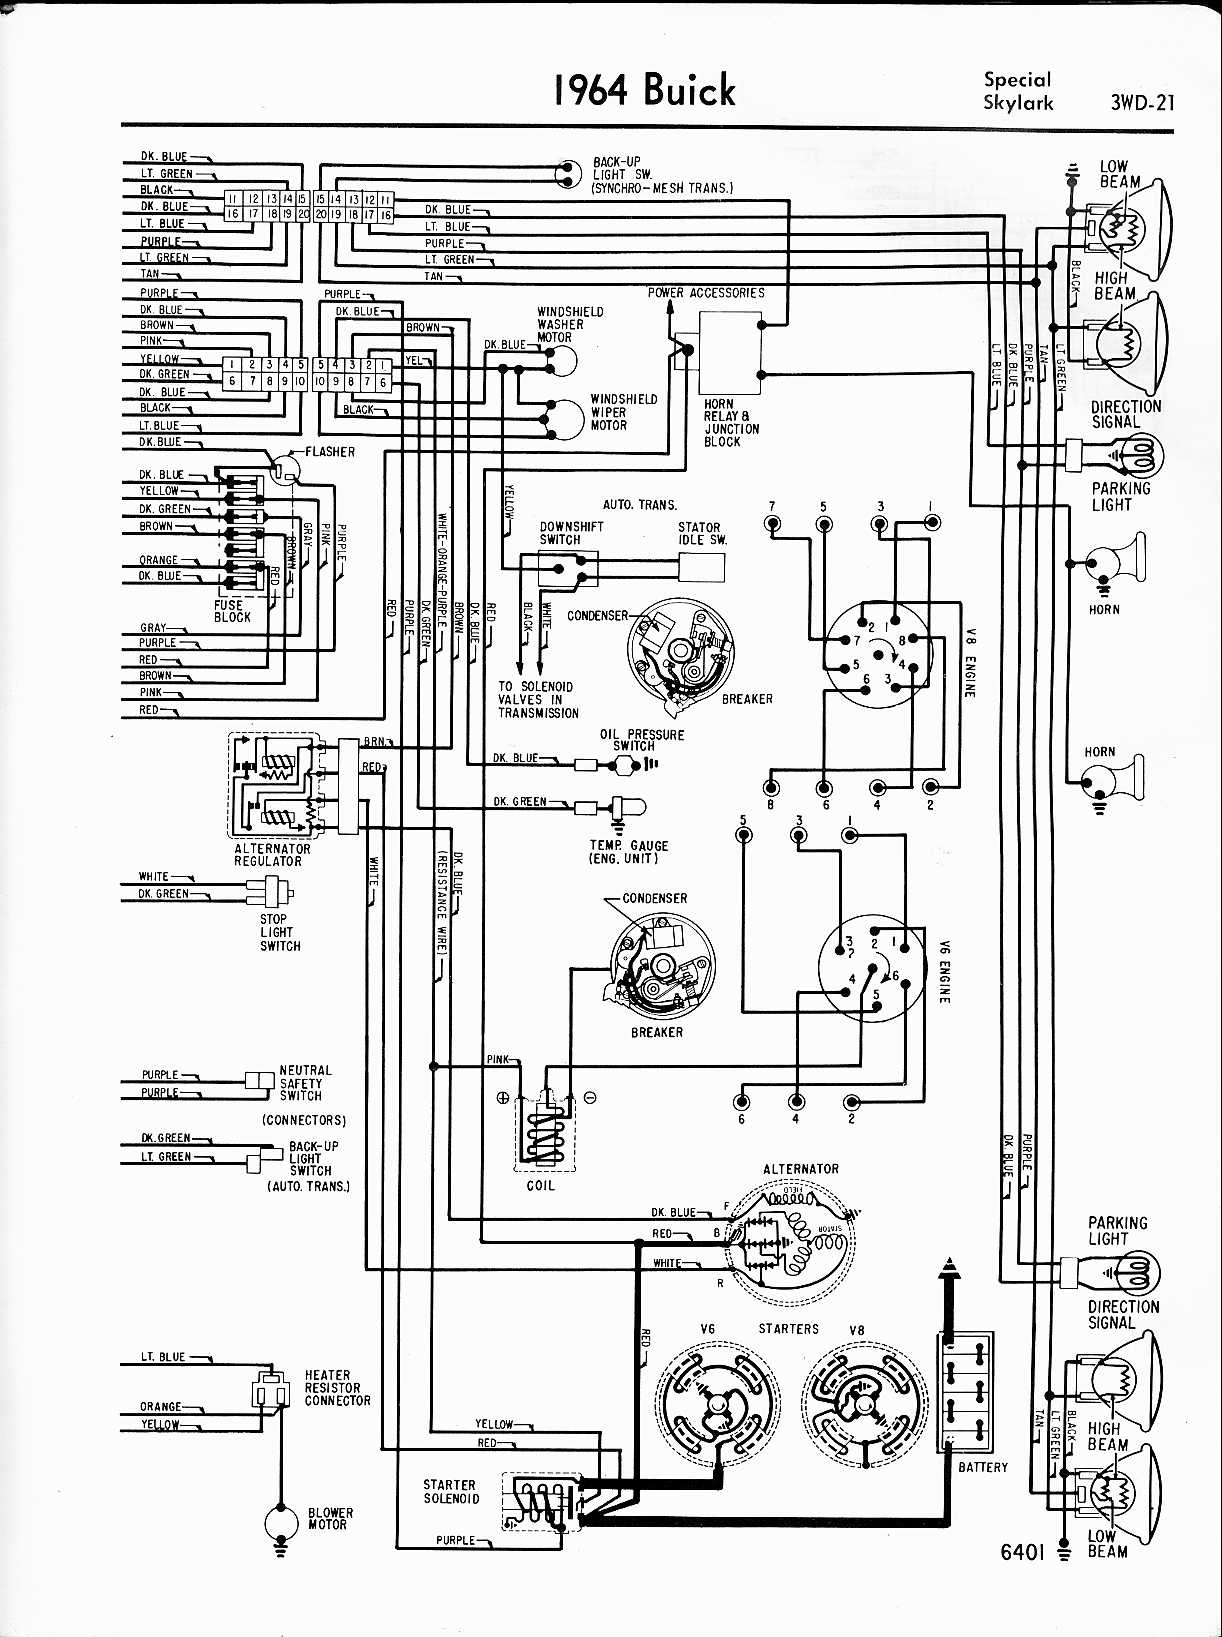 2007 pt cruiser fuse box diagram 2007 manual repair wiring and 1971 buick riviera fuse box